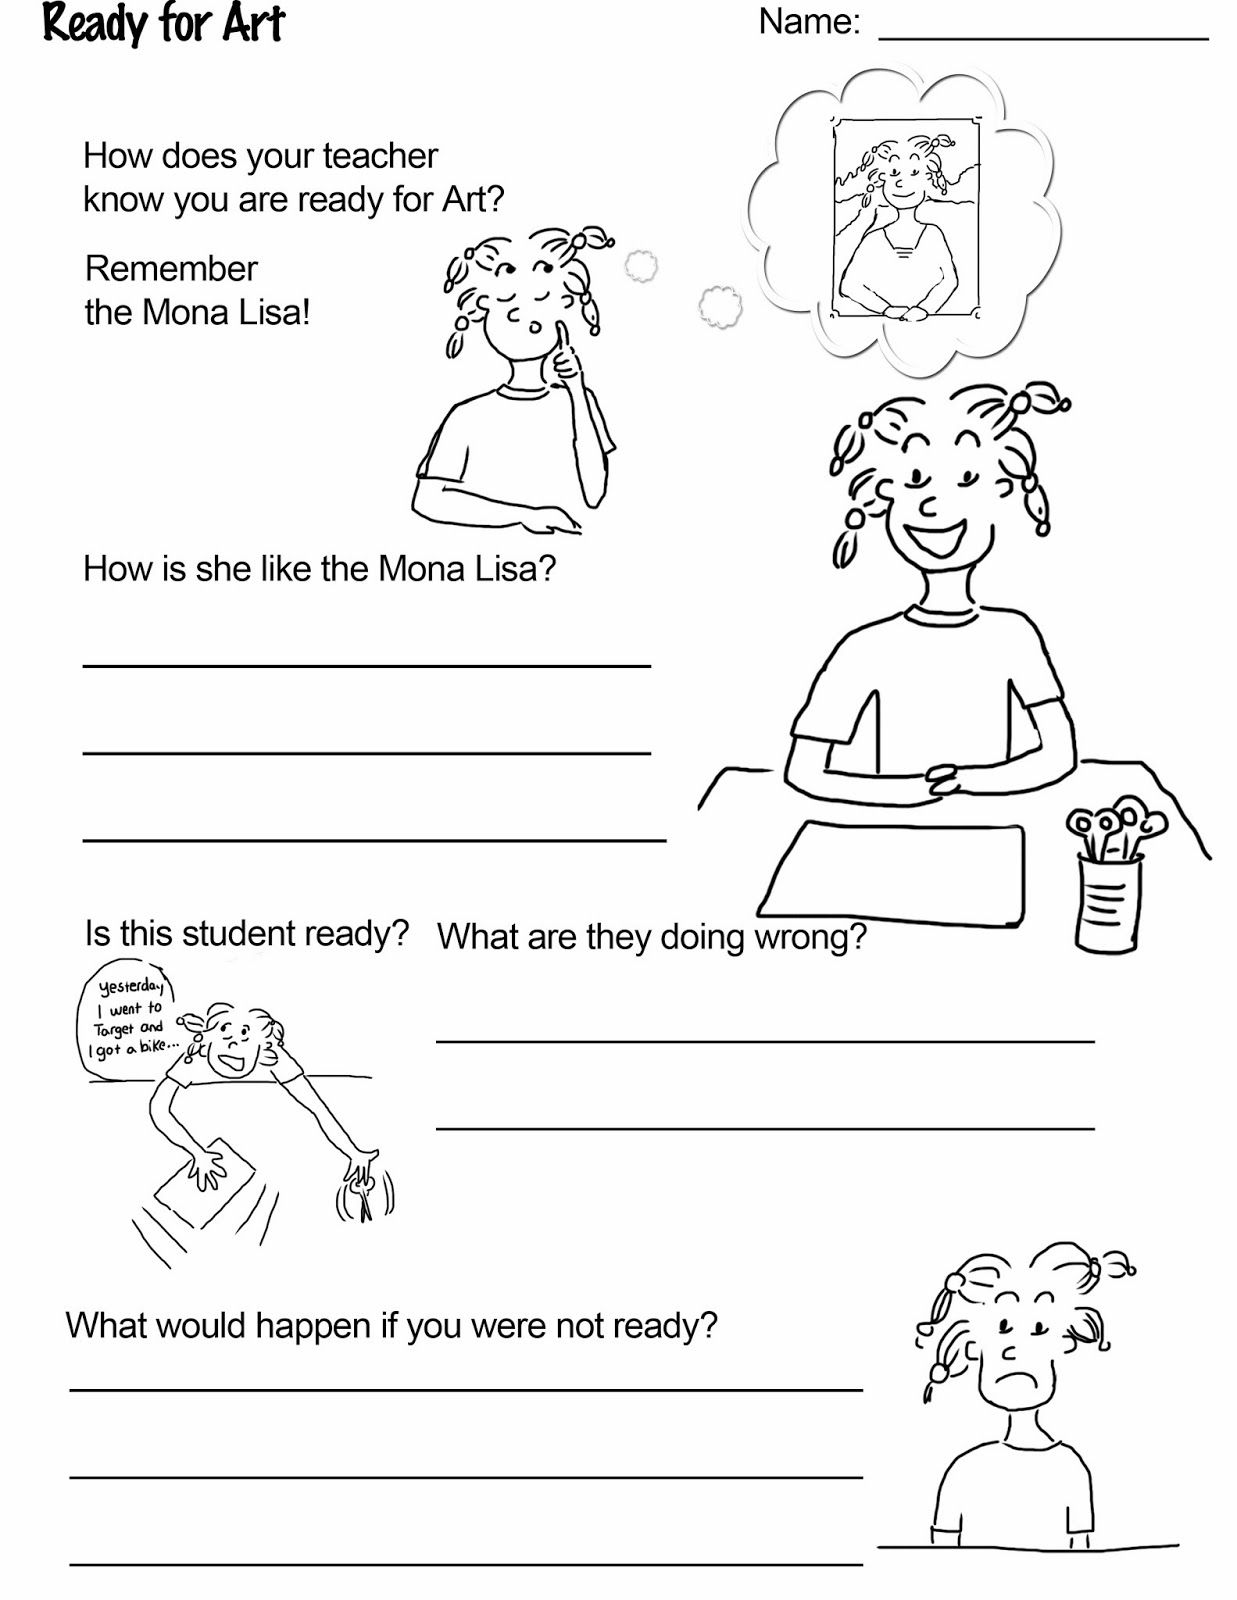 Worksheets Classroom Rules Worksheet certificate maker cute idea to present the kids if we have an no corner suns art rules activity filled workbook help reinforce your classroom and routine